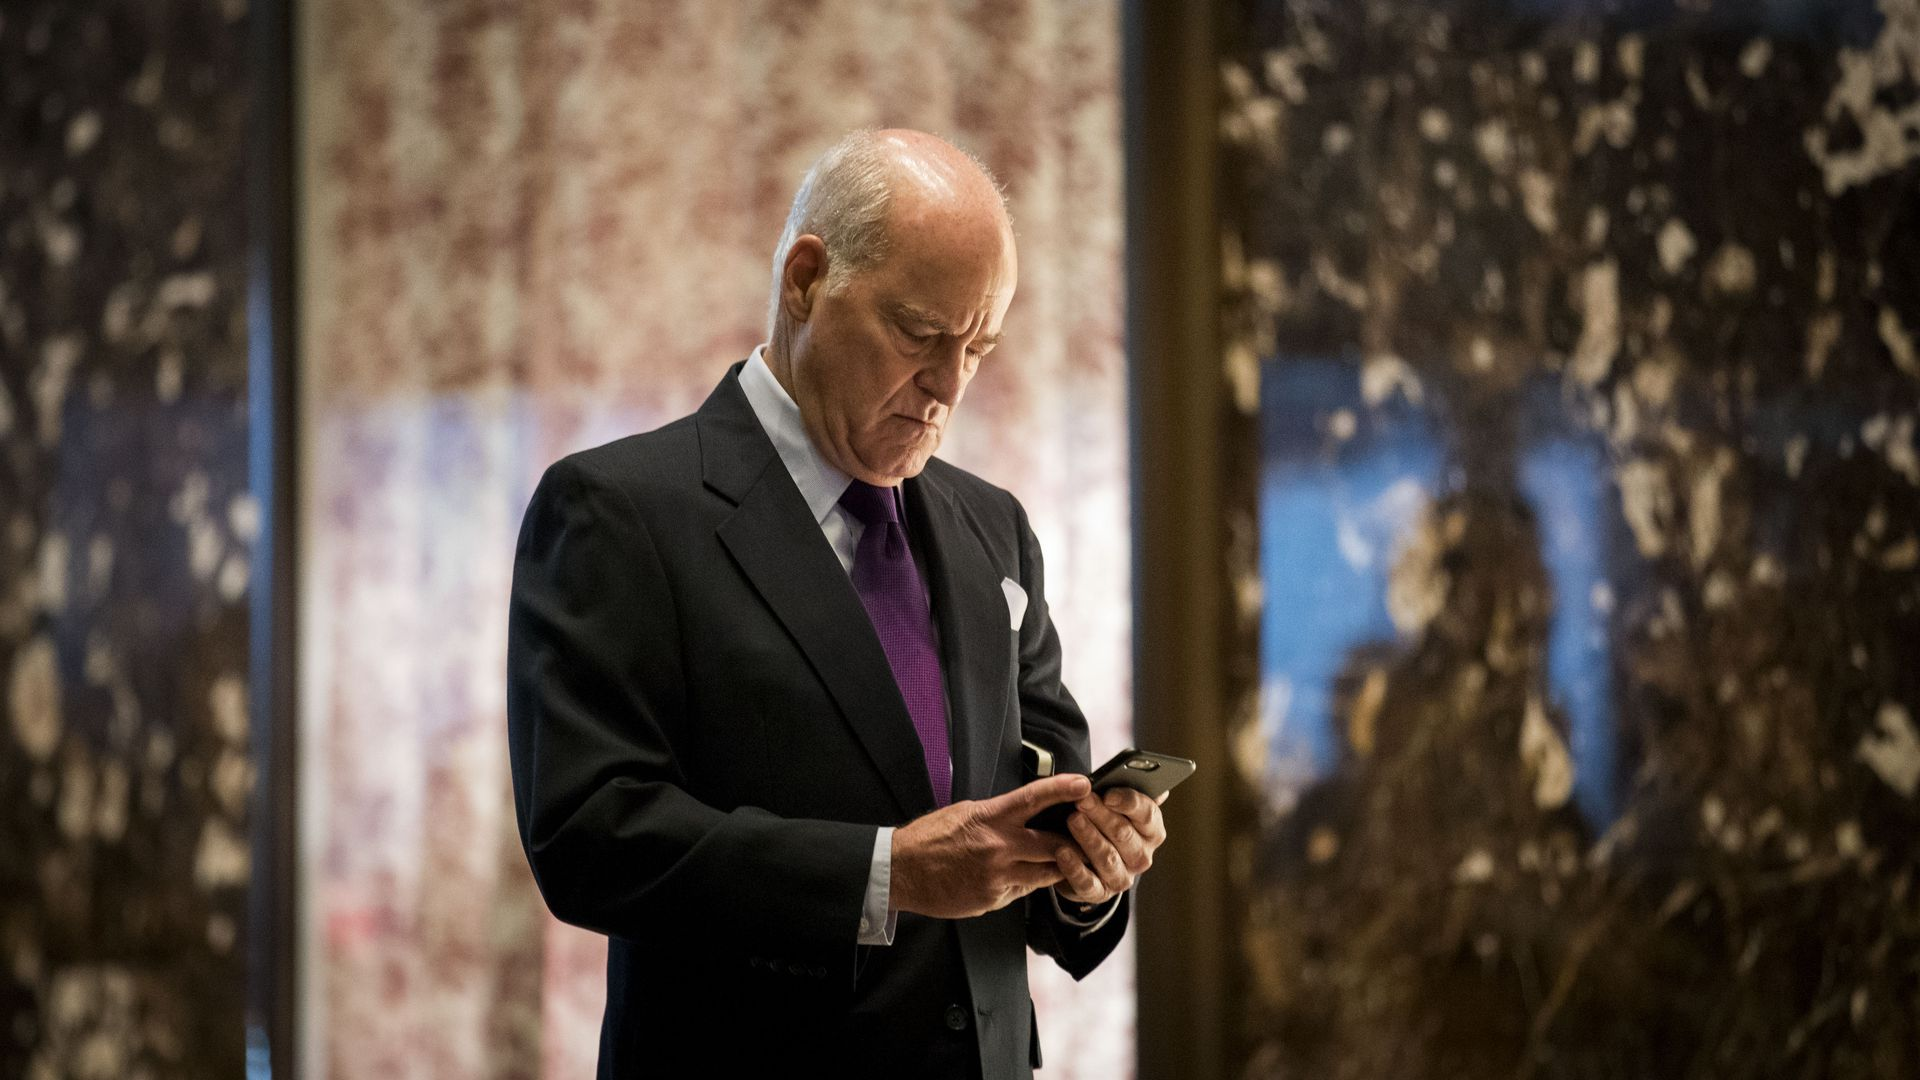 KKR co-founder Henry Kravis, looks at phone while at Trump Tower.